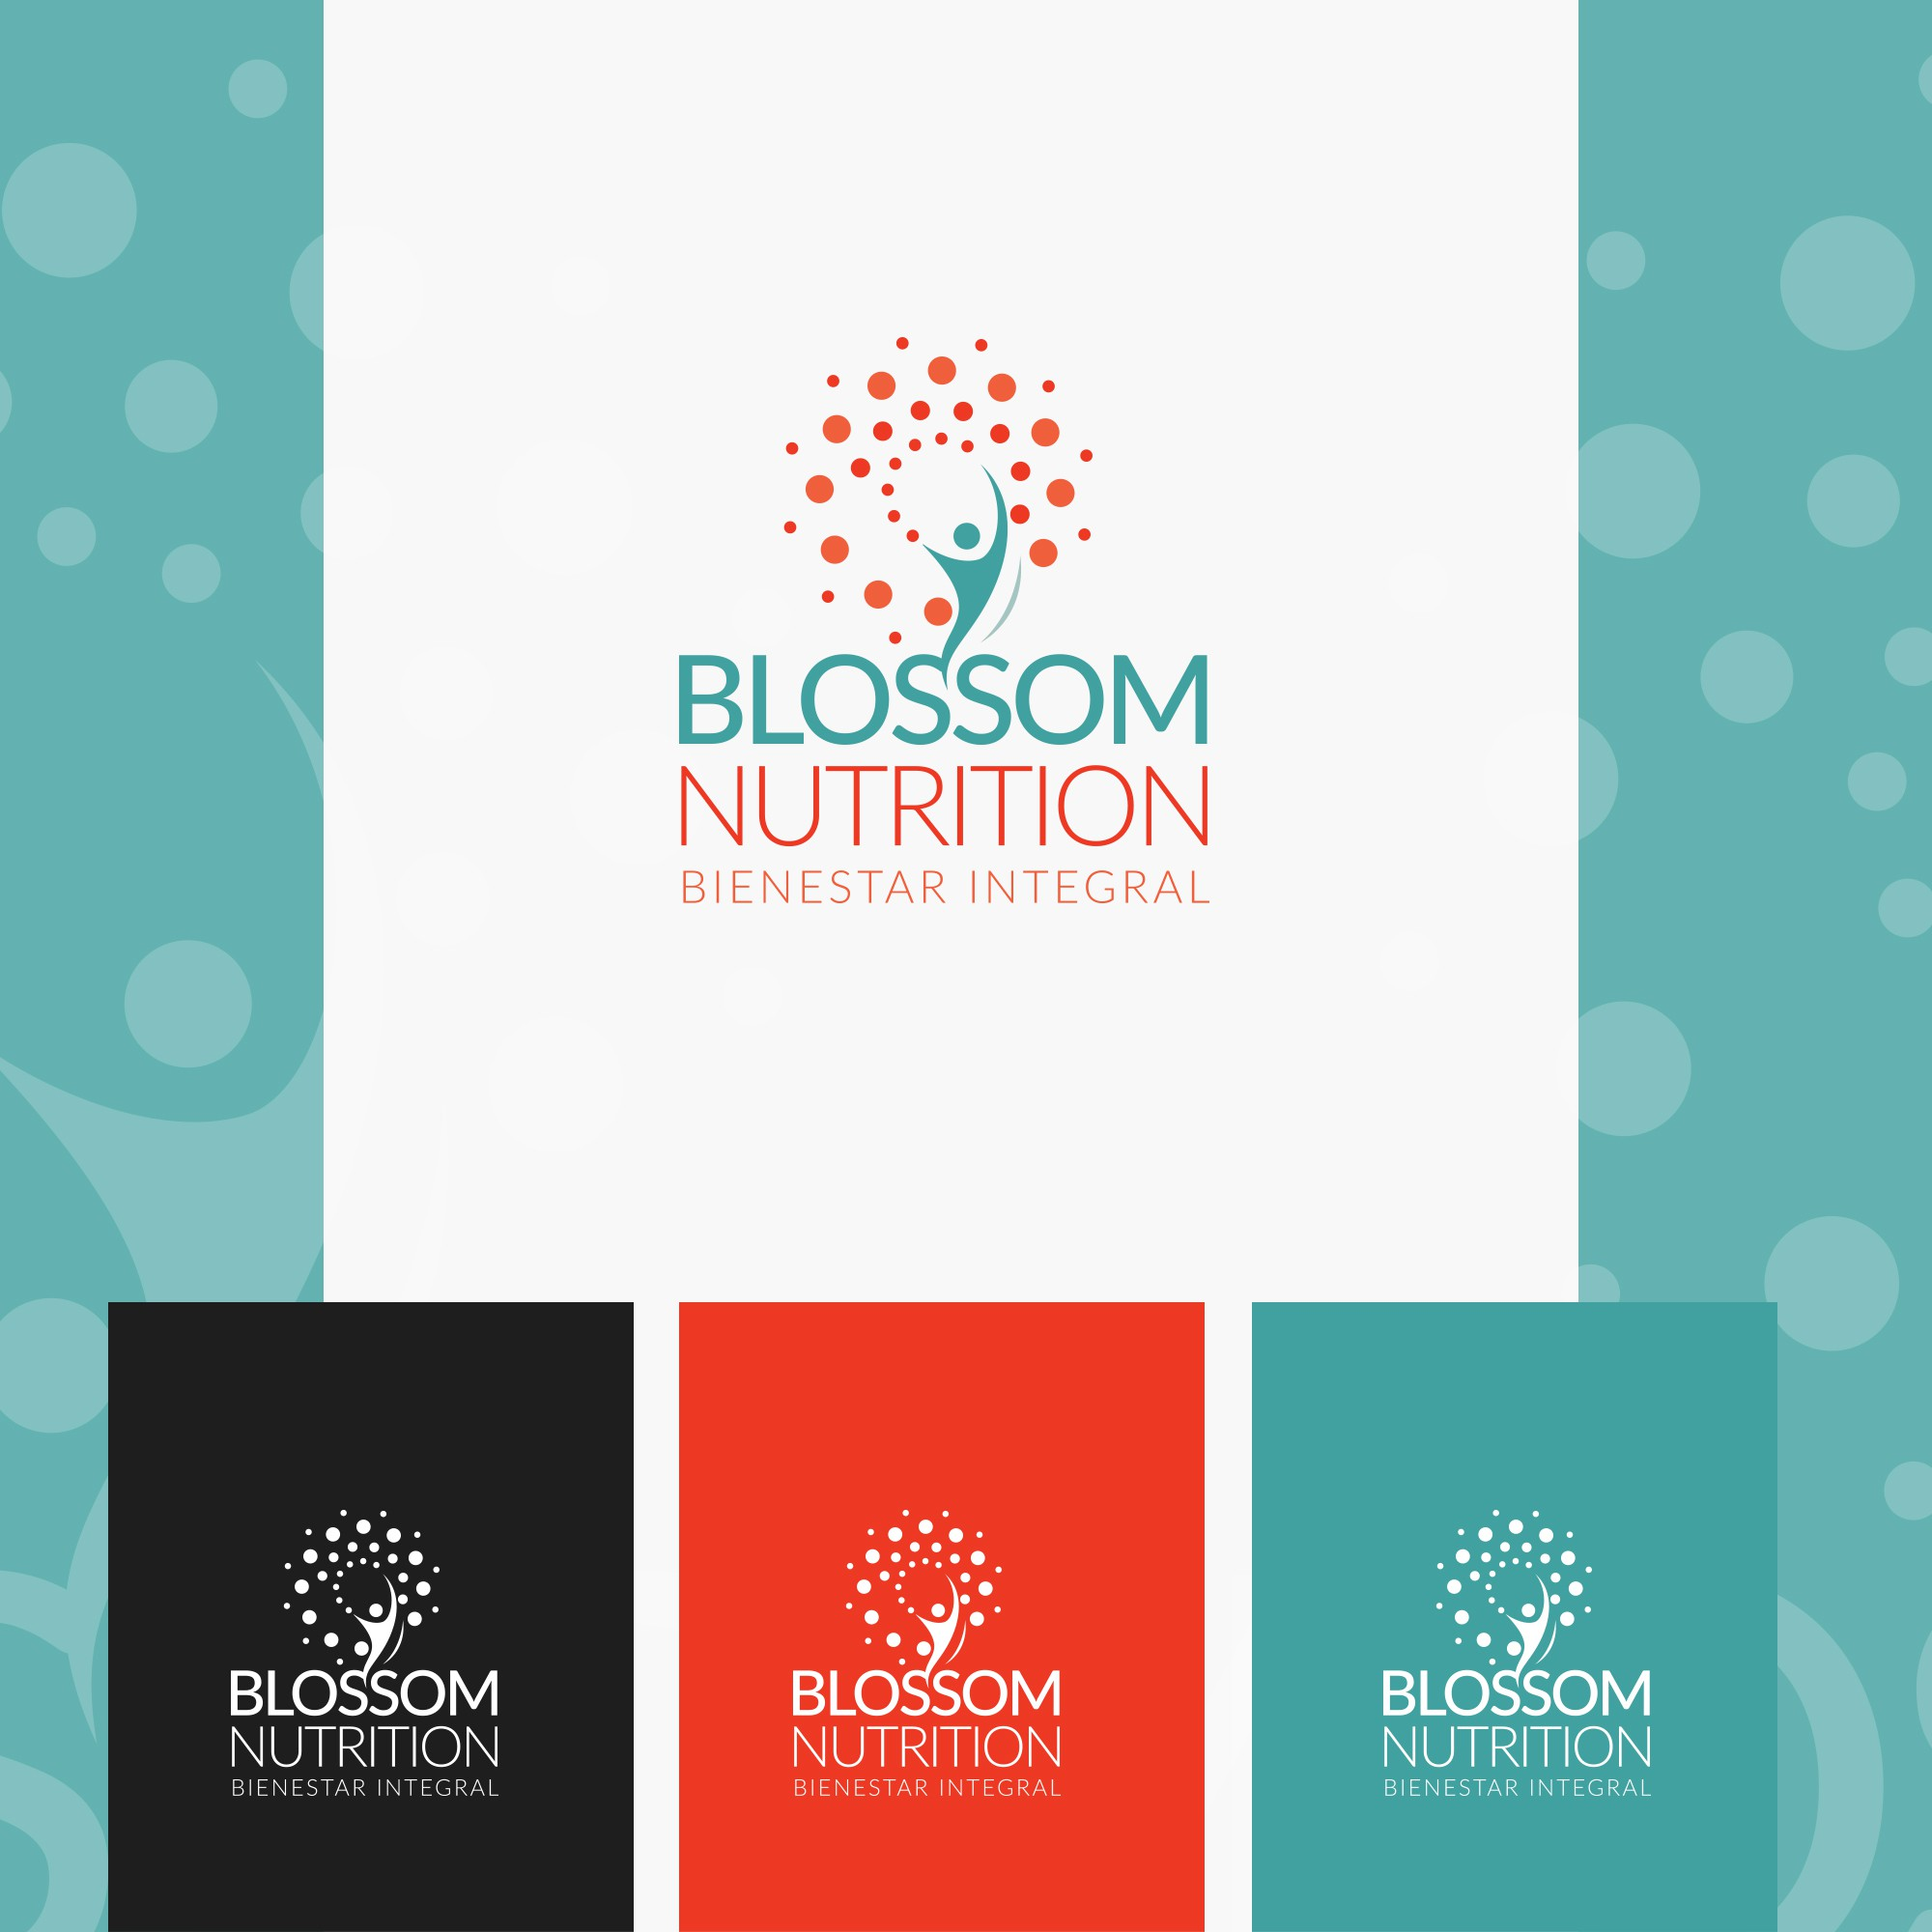 Corporate Wellness and Entrepreneur requires powerful logo to send strong and positive message.